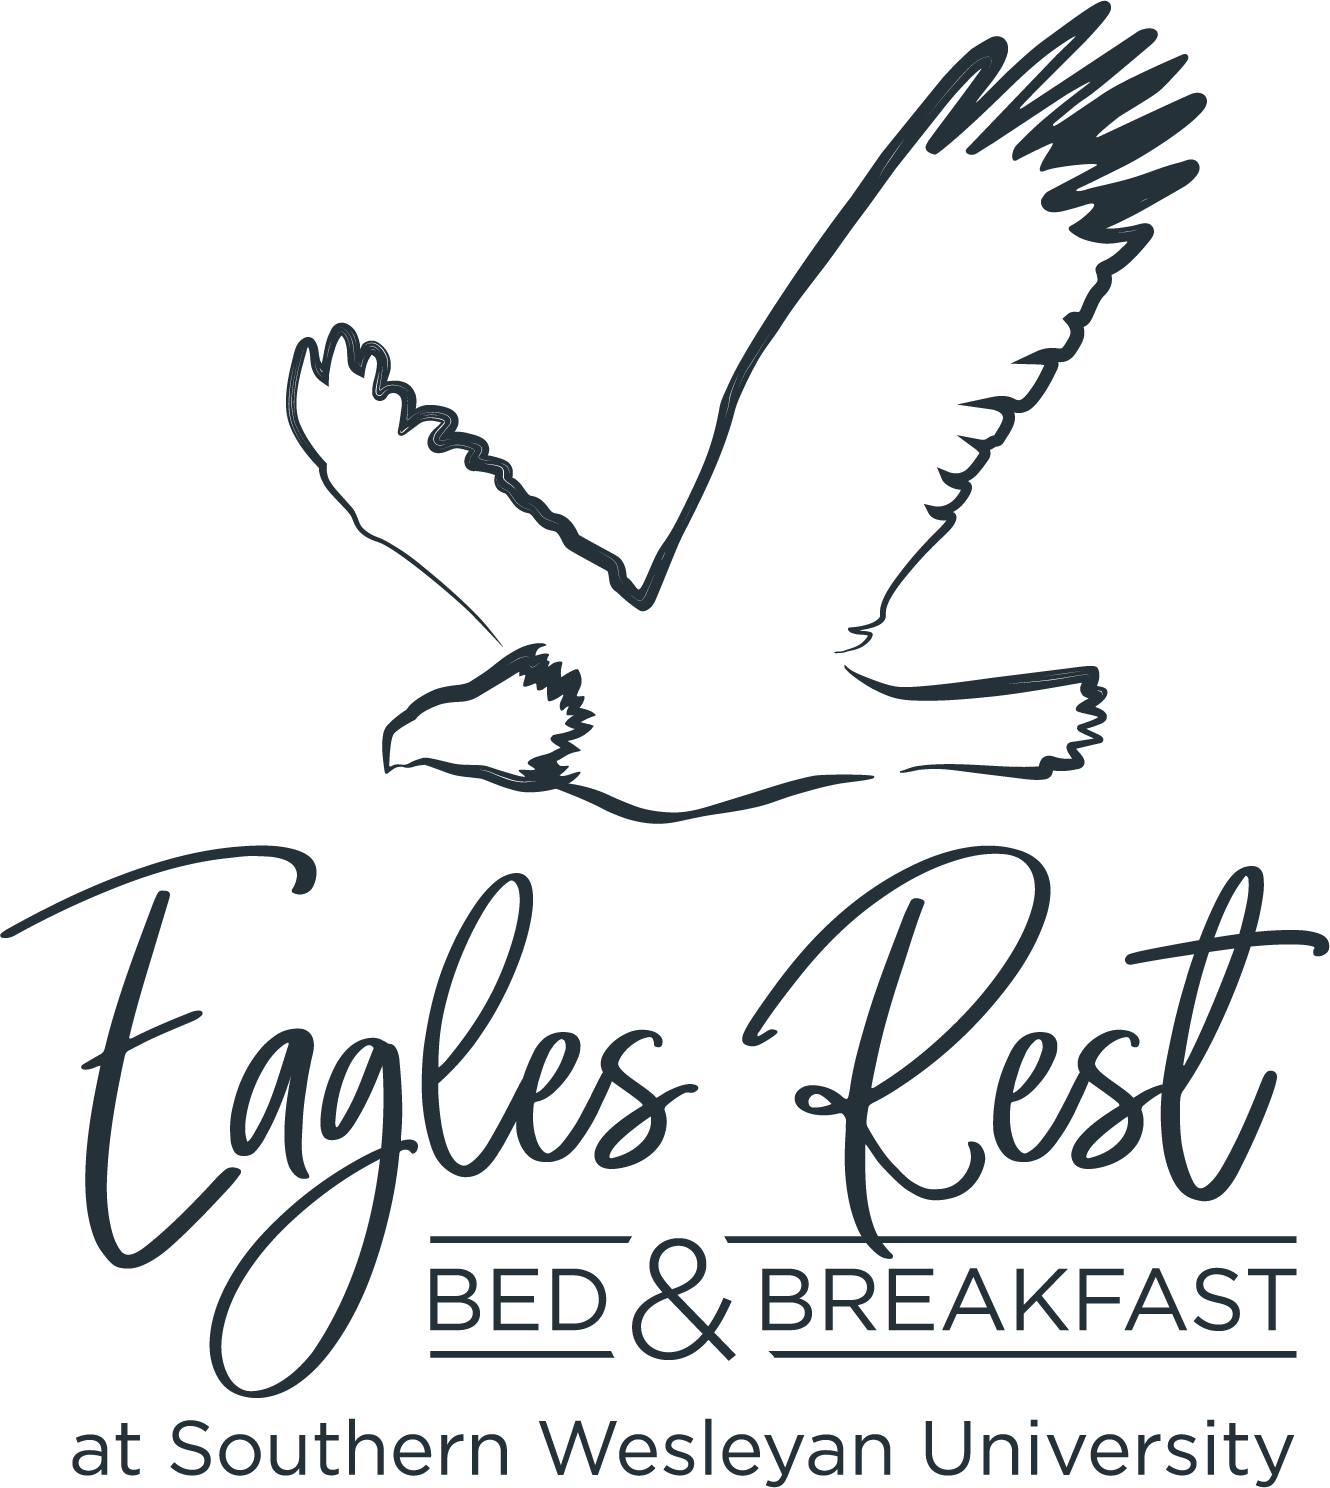 Eagles Rest Bed and Breakfast